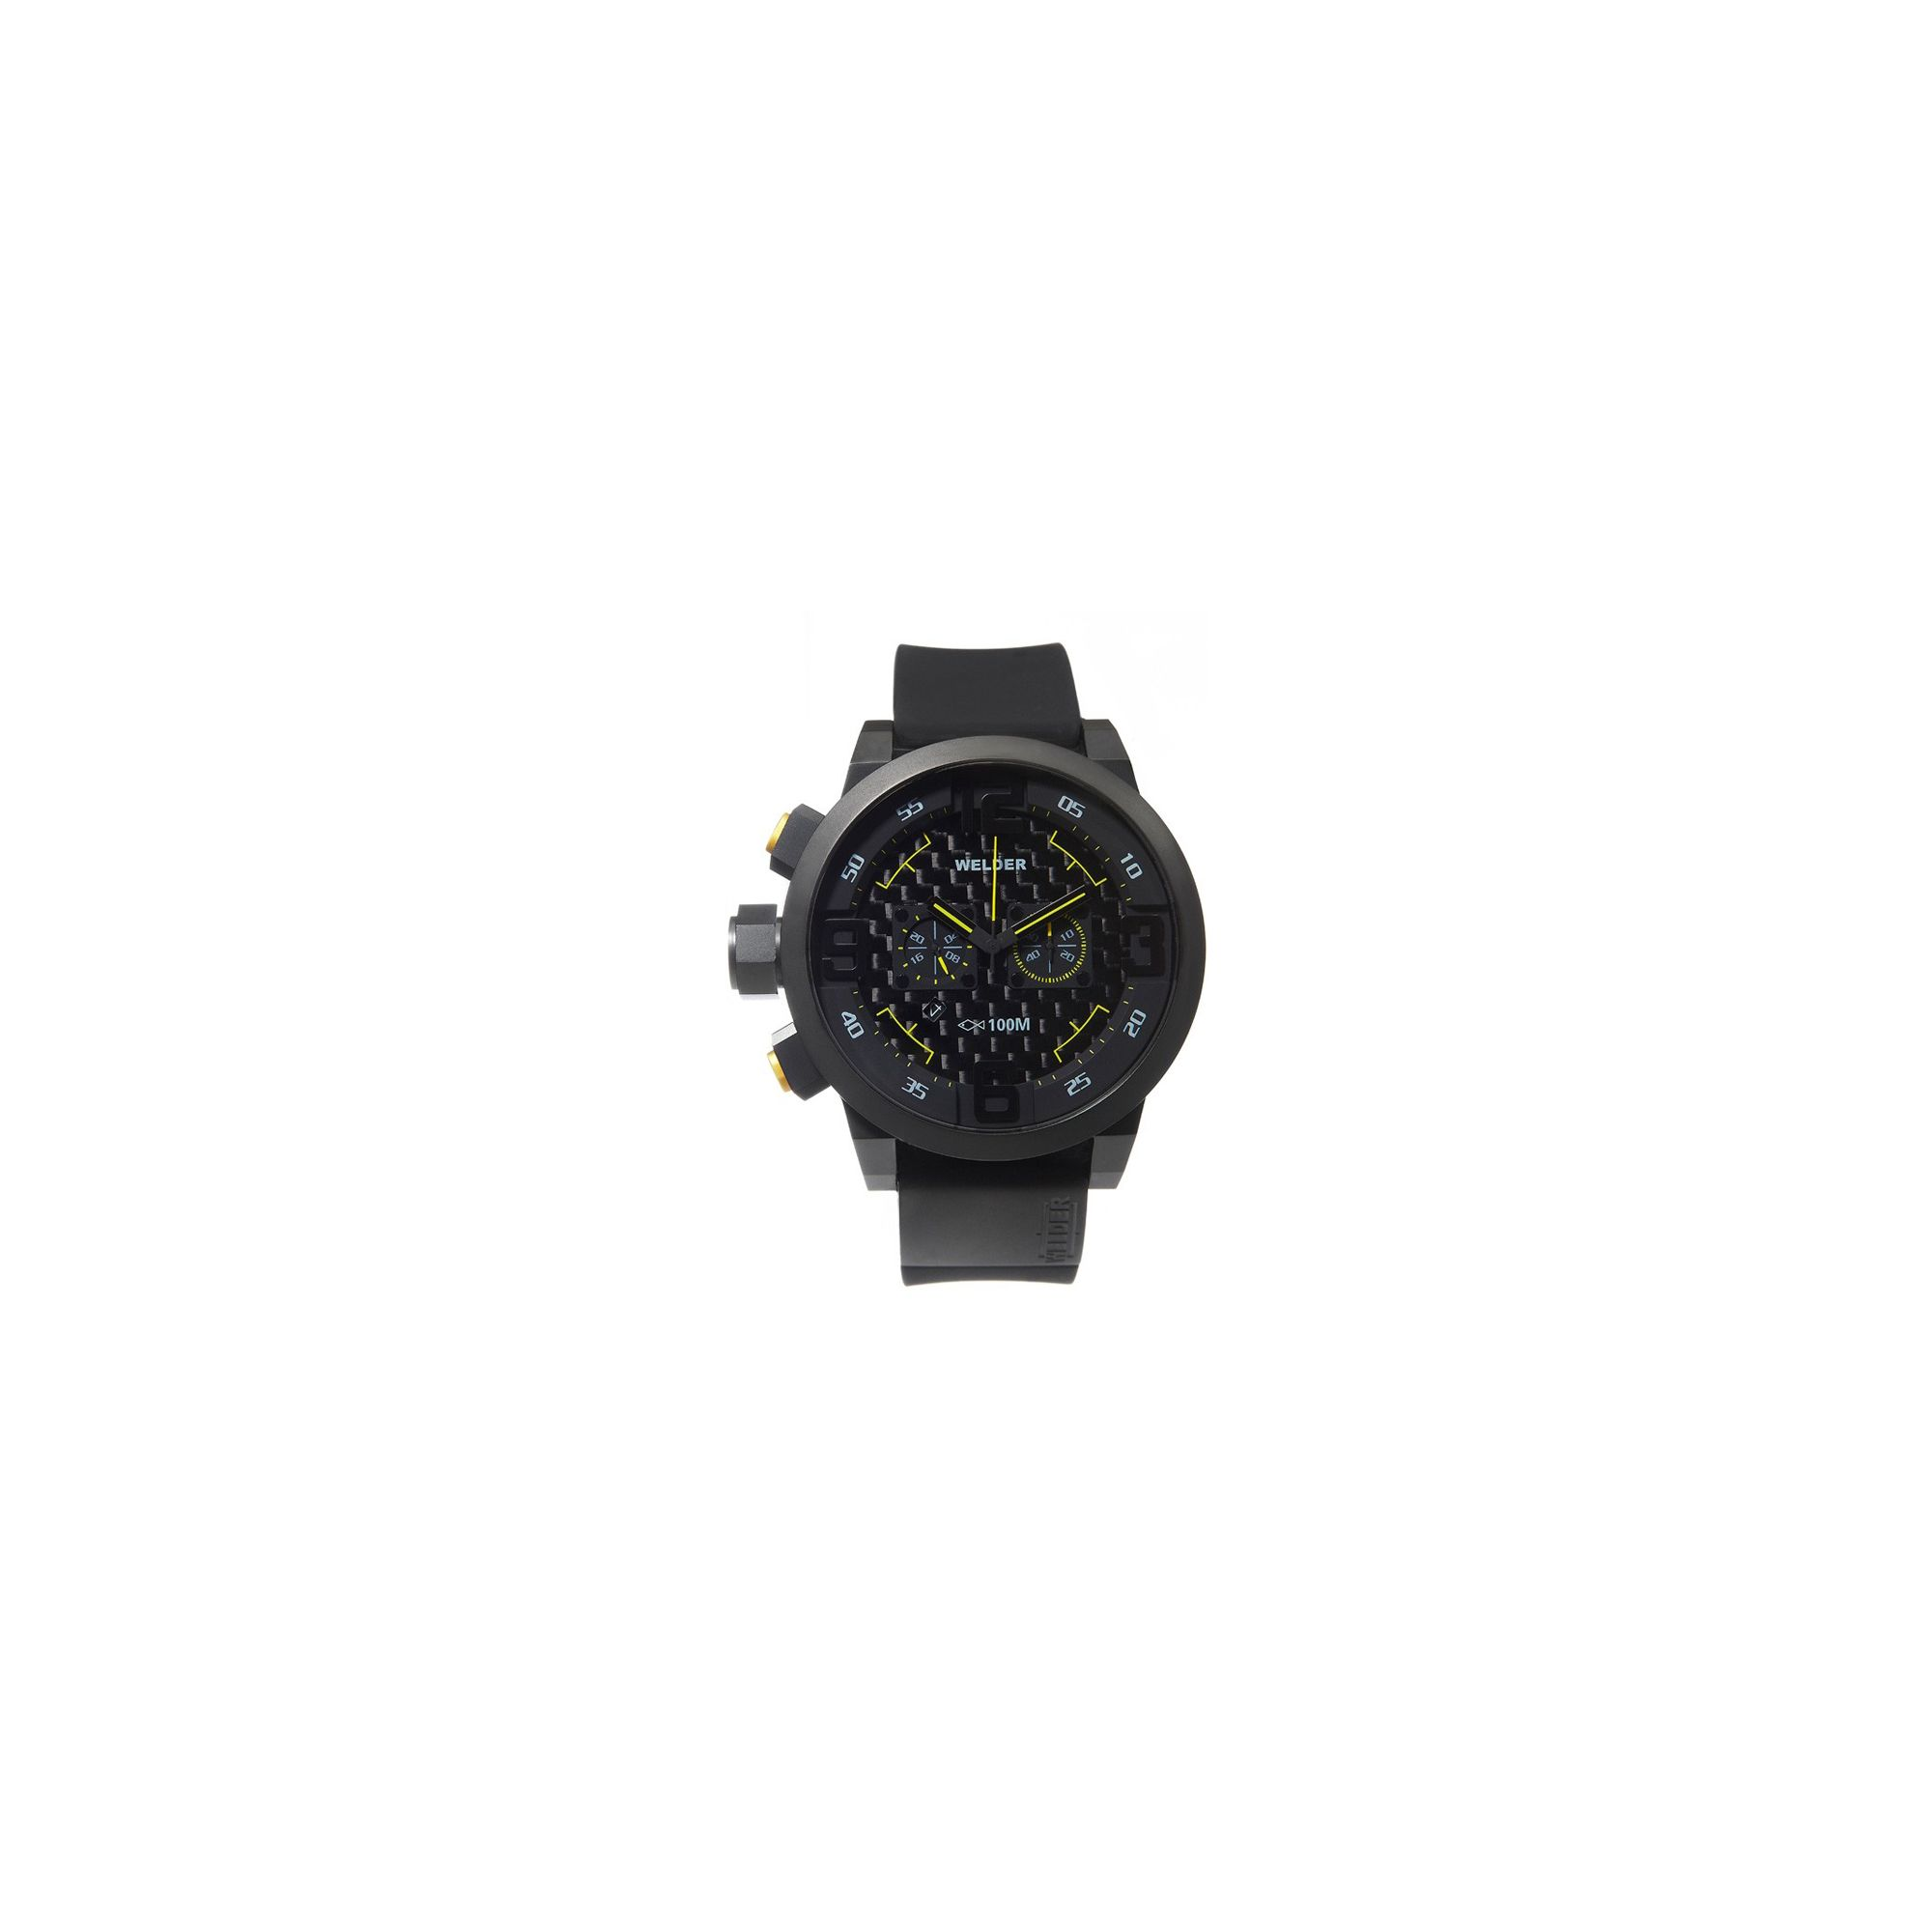 Welder Gents Black Dial Black Rubber Strap Watch K31-10000 at Tesco Direct